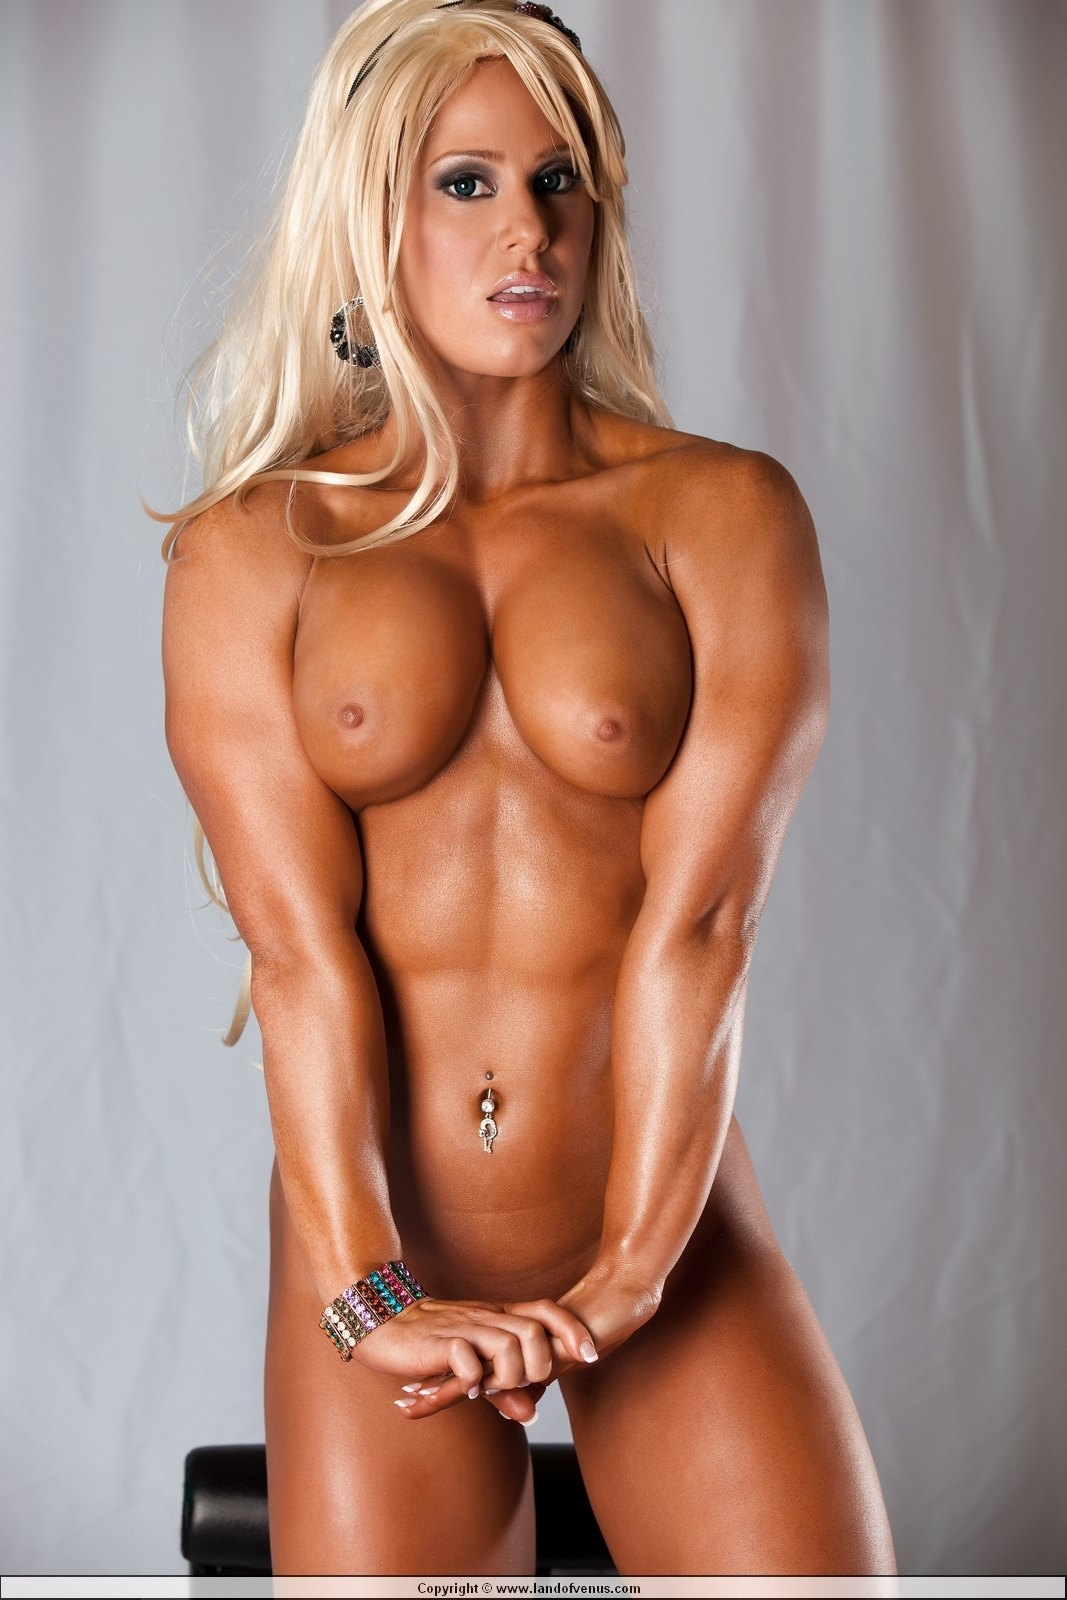 Huge Boobs Babe Shows Her Naked Muscular Body